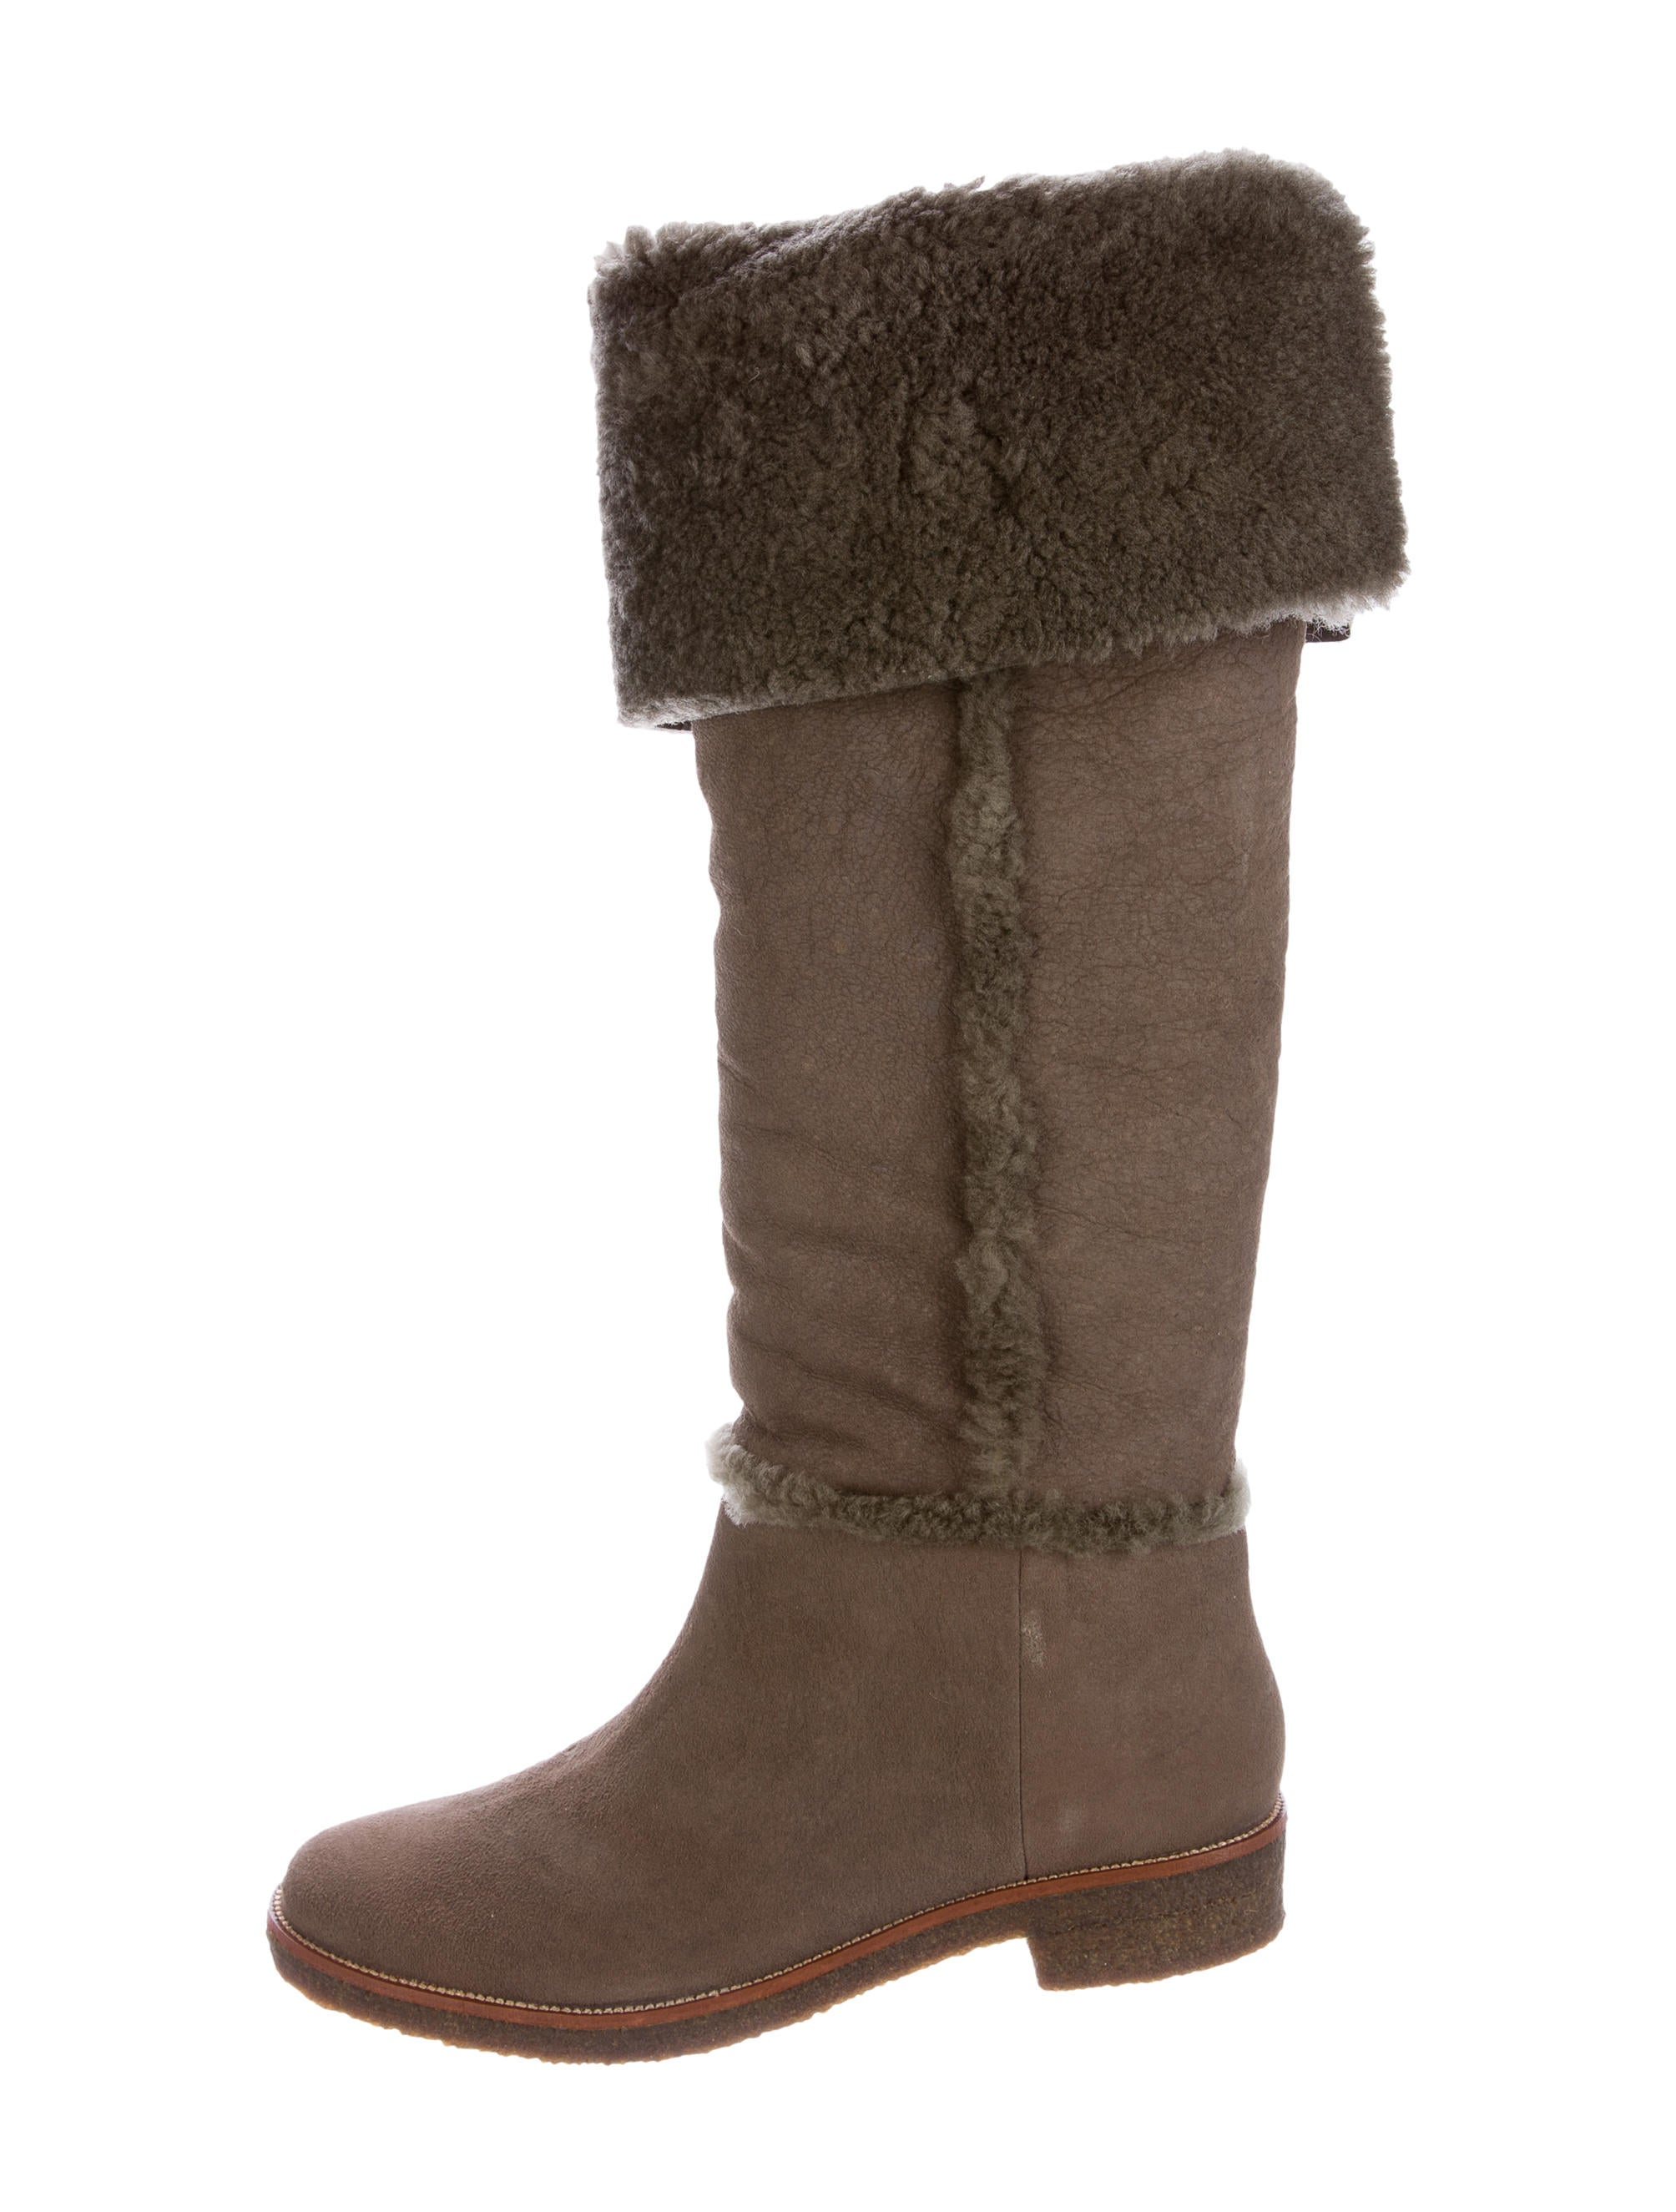 diane furstenberg shearling knee high boots shoes